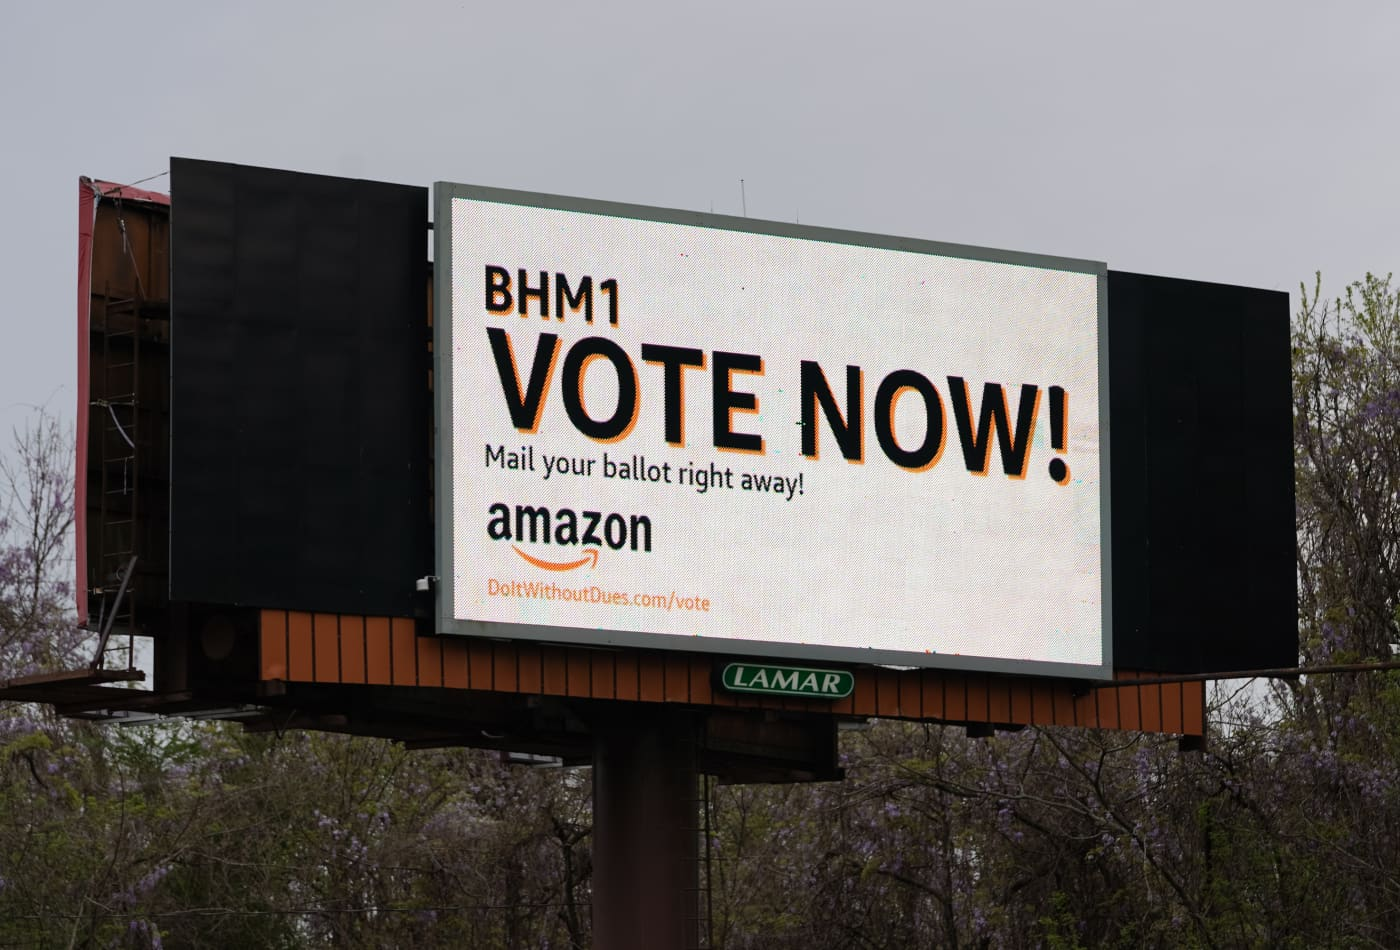 Amazon illegally interfered in Alabama warehouse election, union alleges in complaint to federal officials